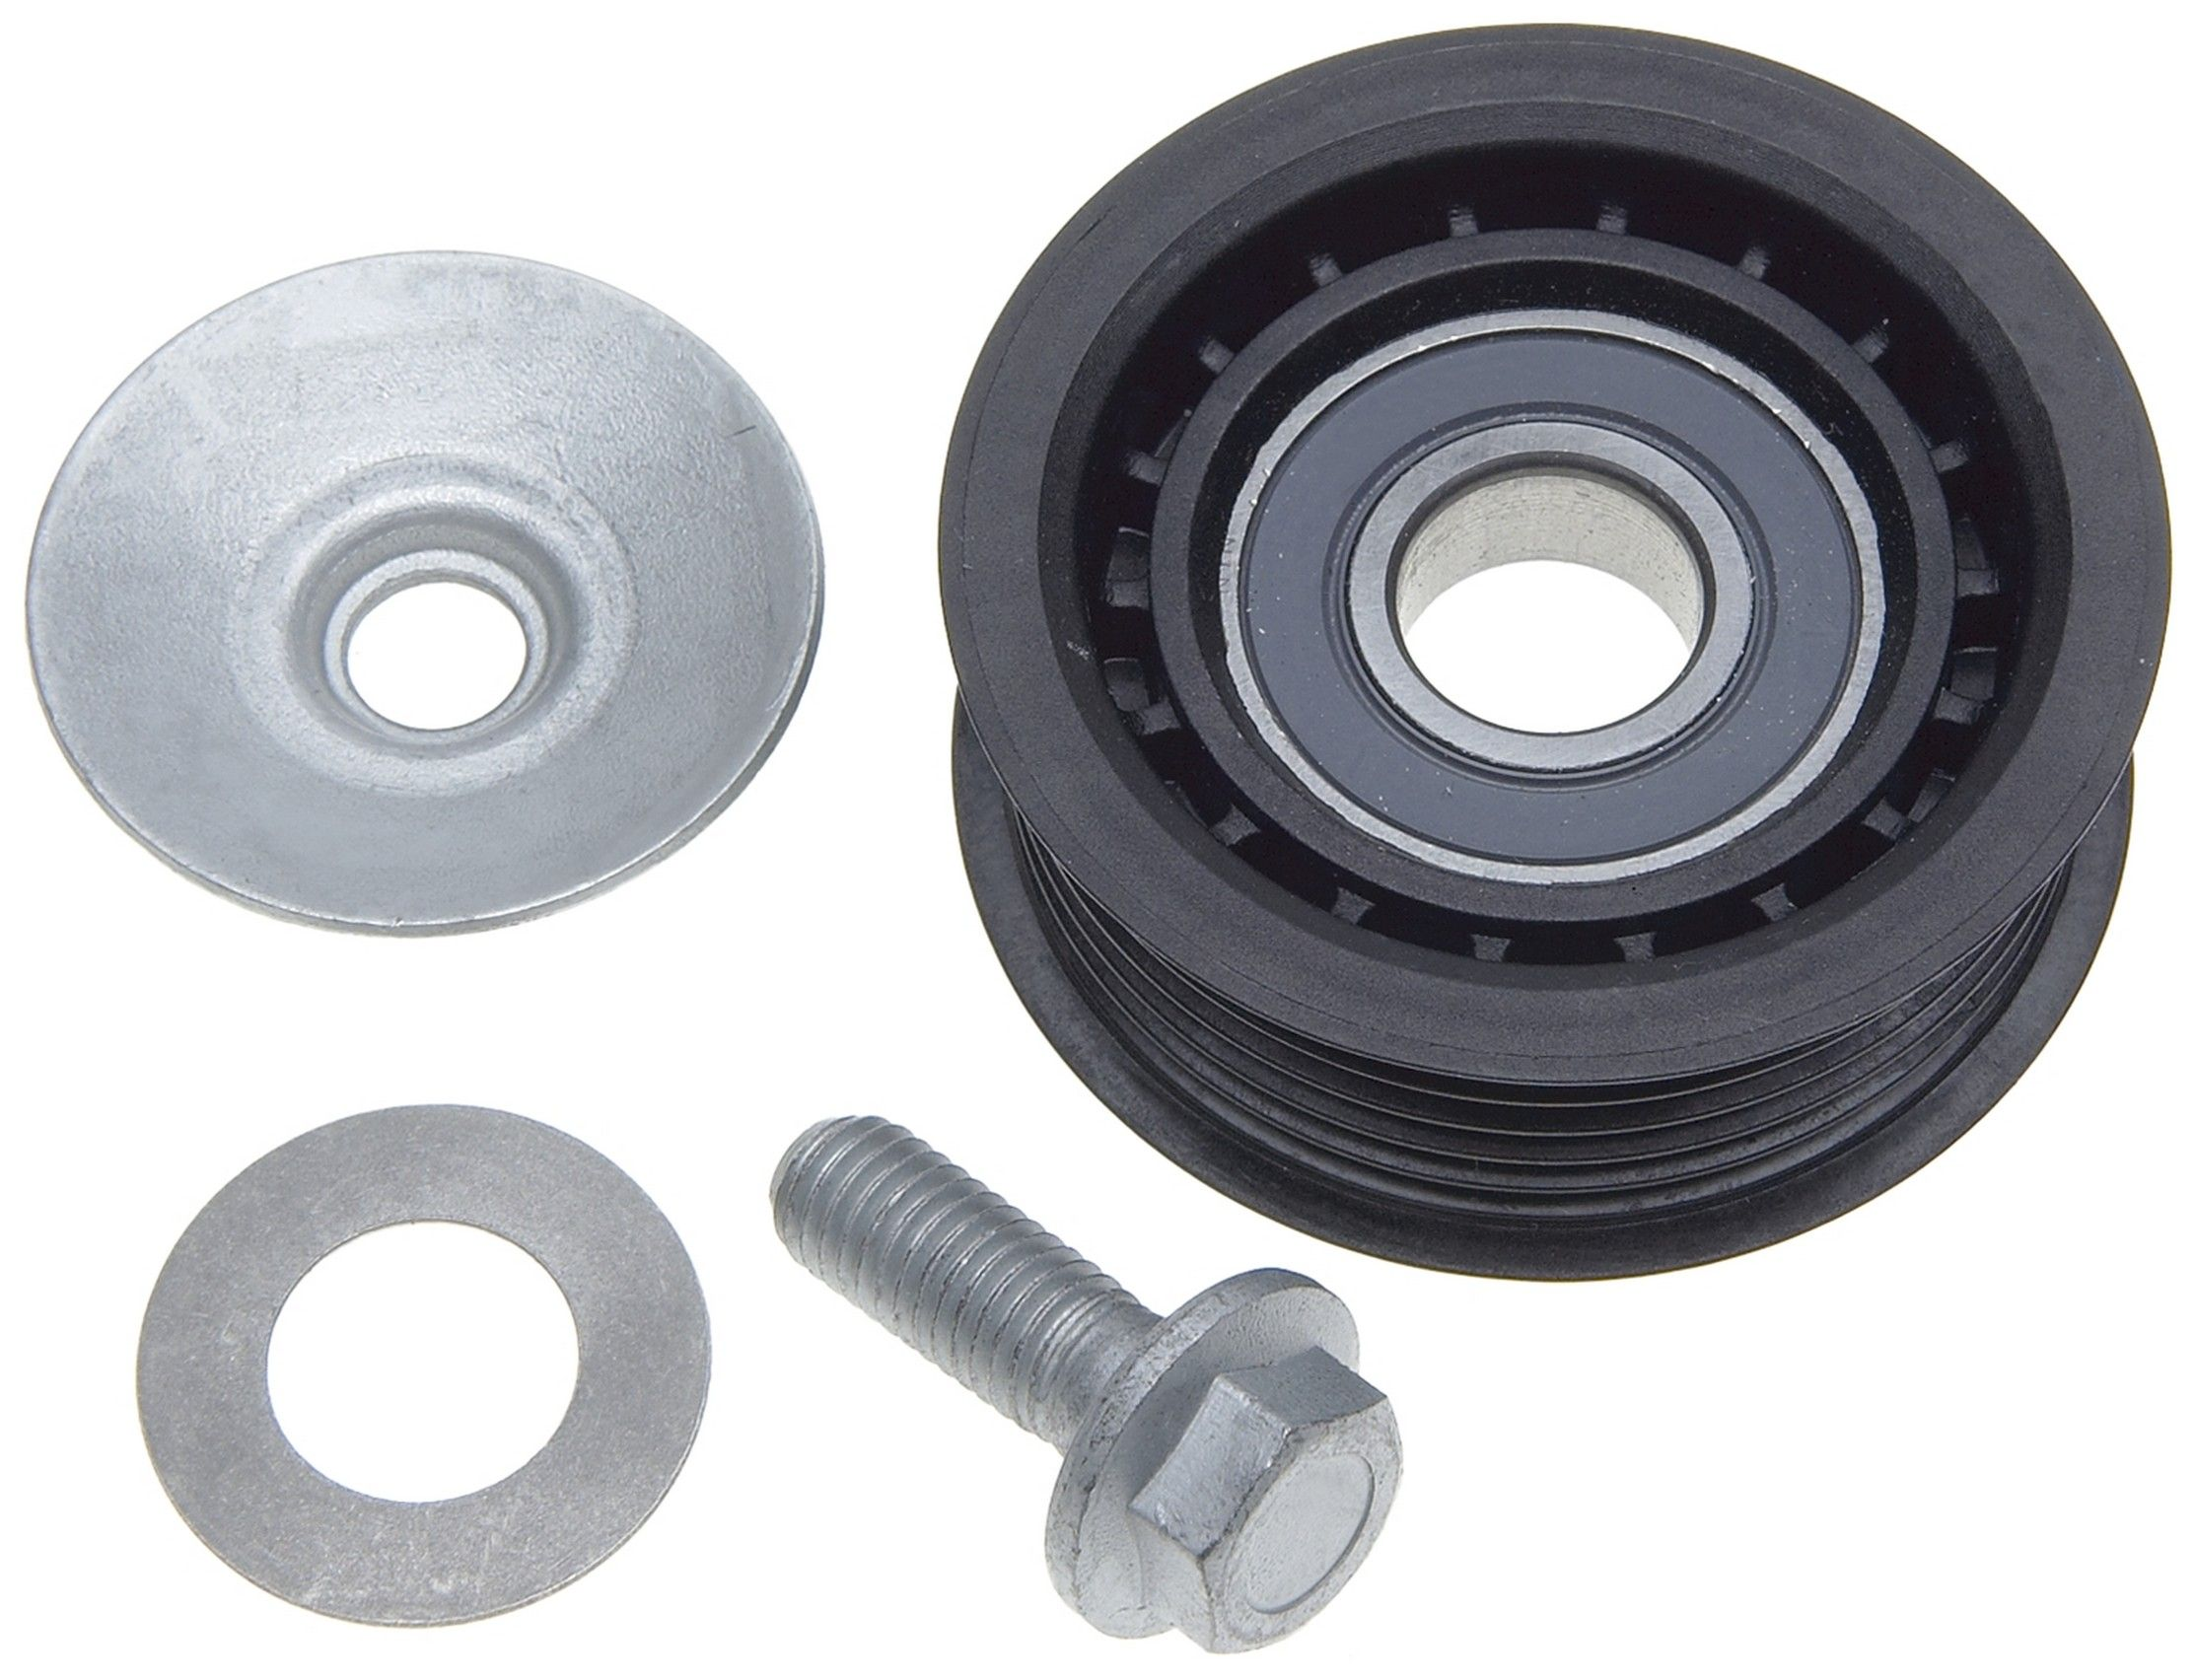 Saab 9 5 Drive Belt Idler Pulley Replacement Acdelco Apa Uro Parts Timing 00 2003 Grooved 4 Cyl 23l Gates 36079